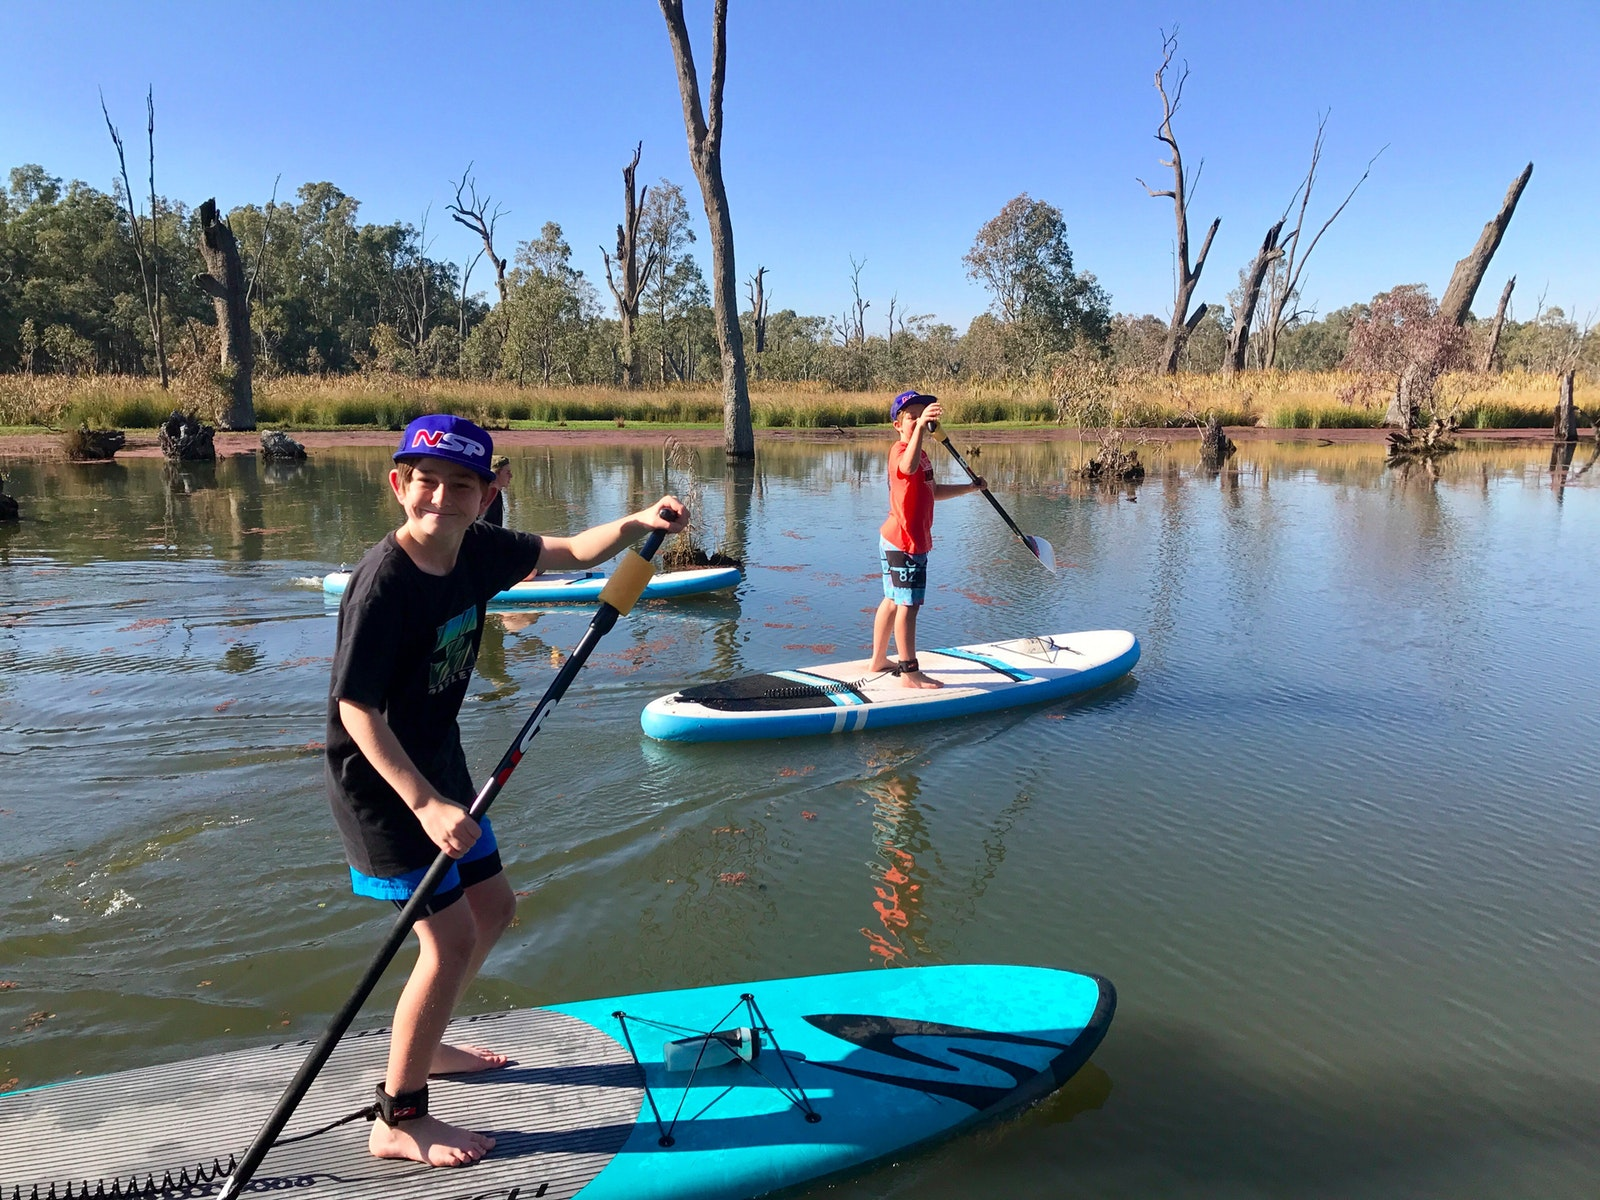 Get the kids out on the water exploring